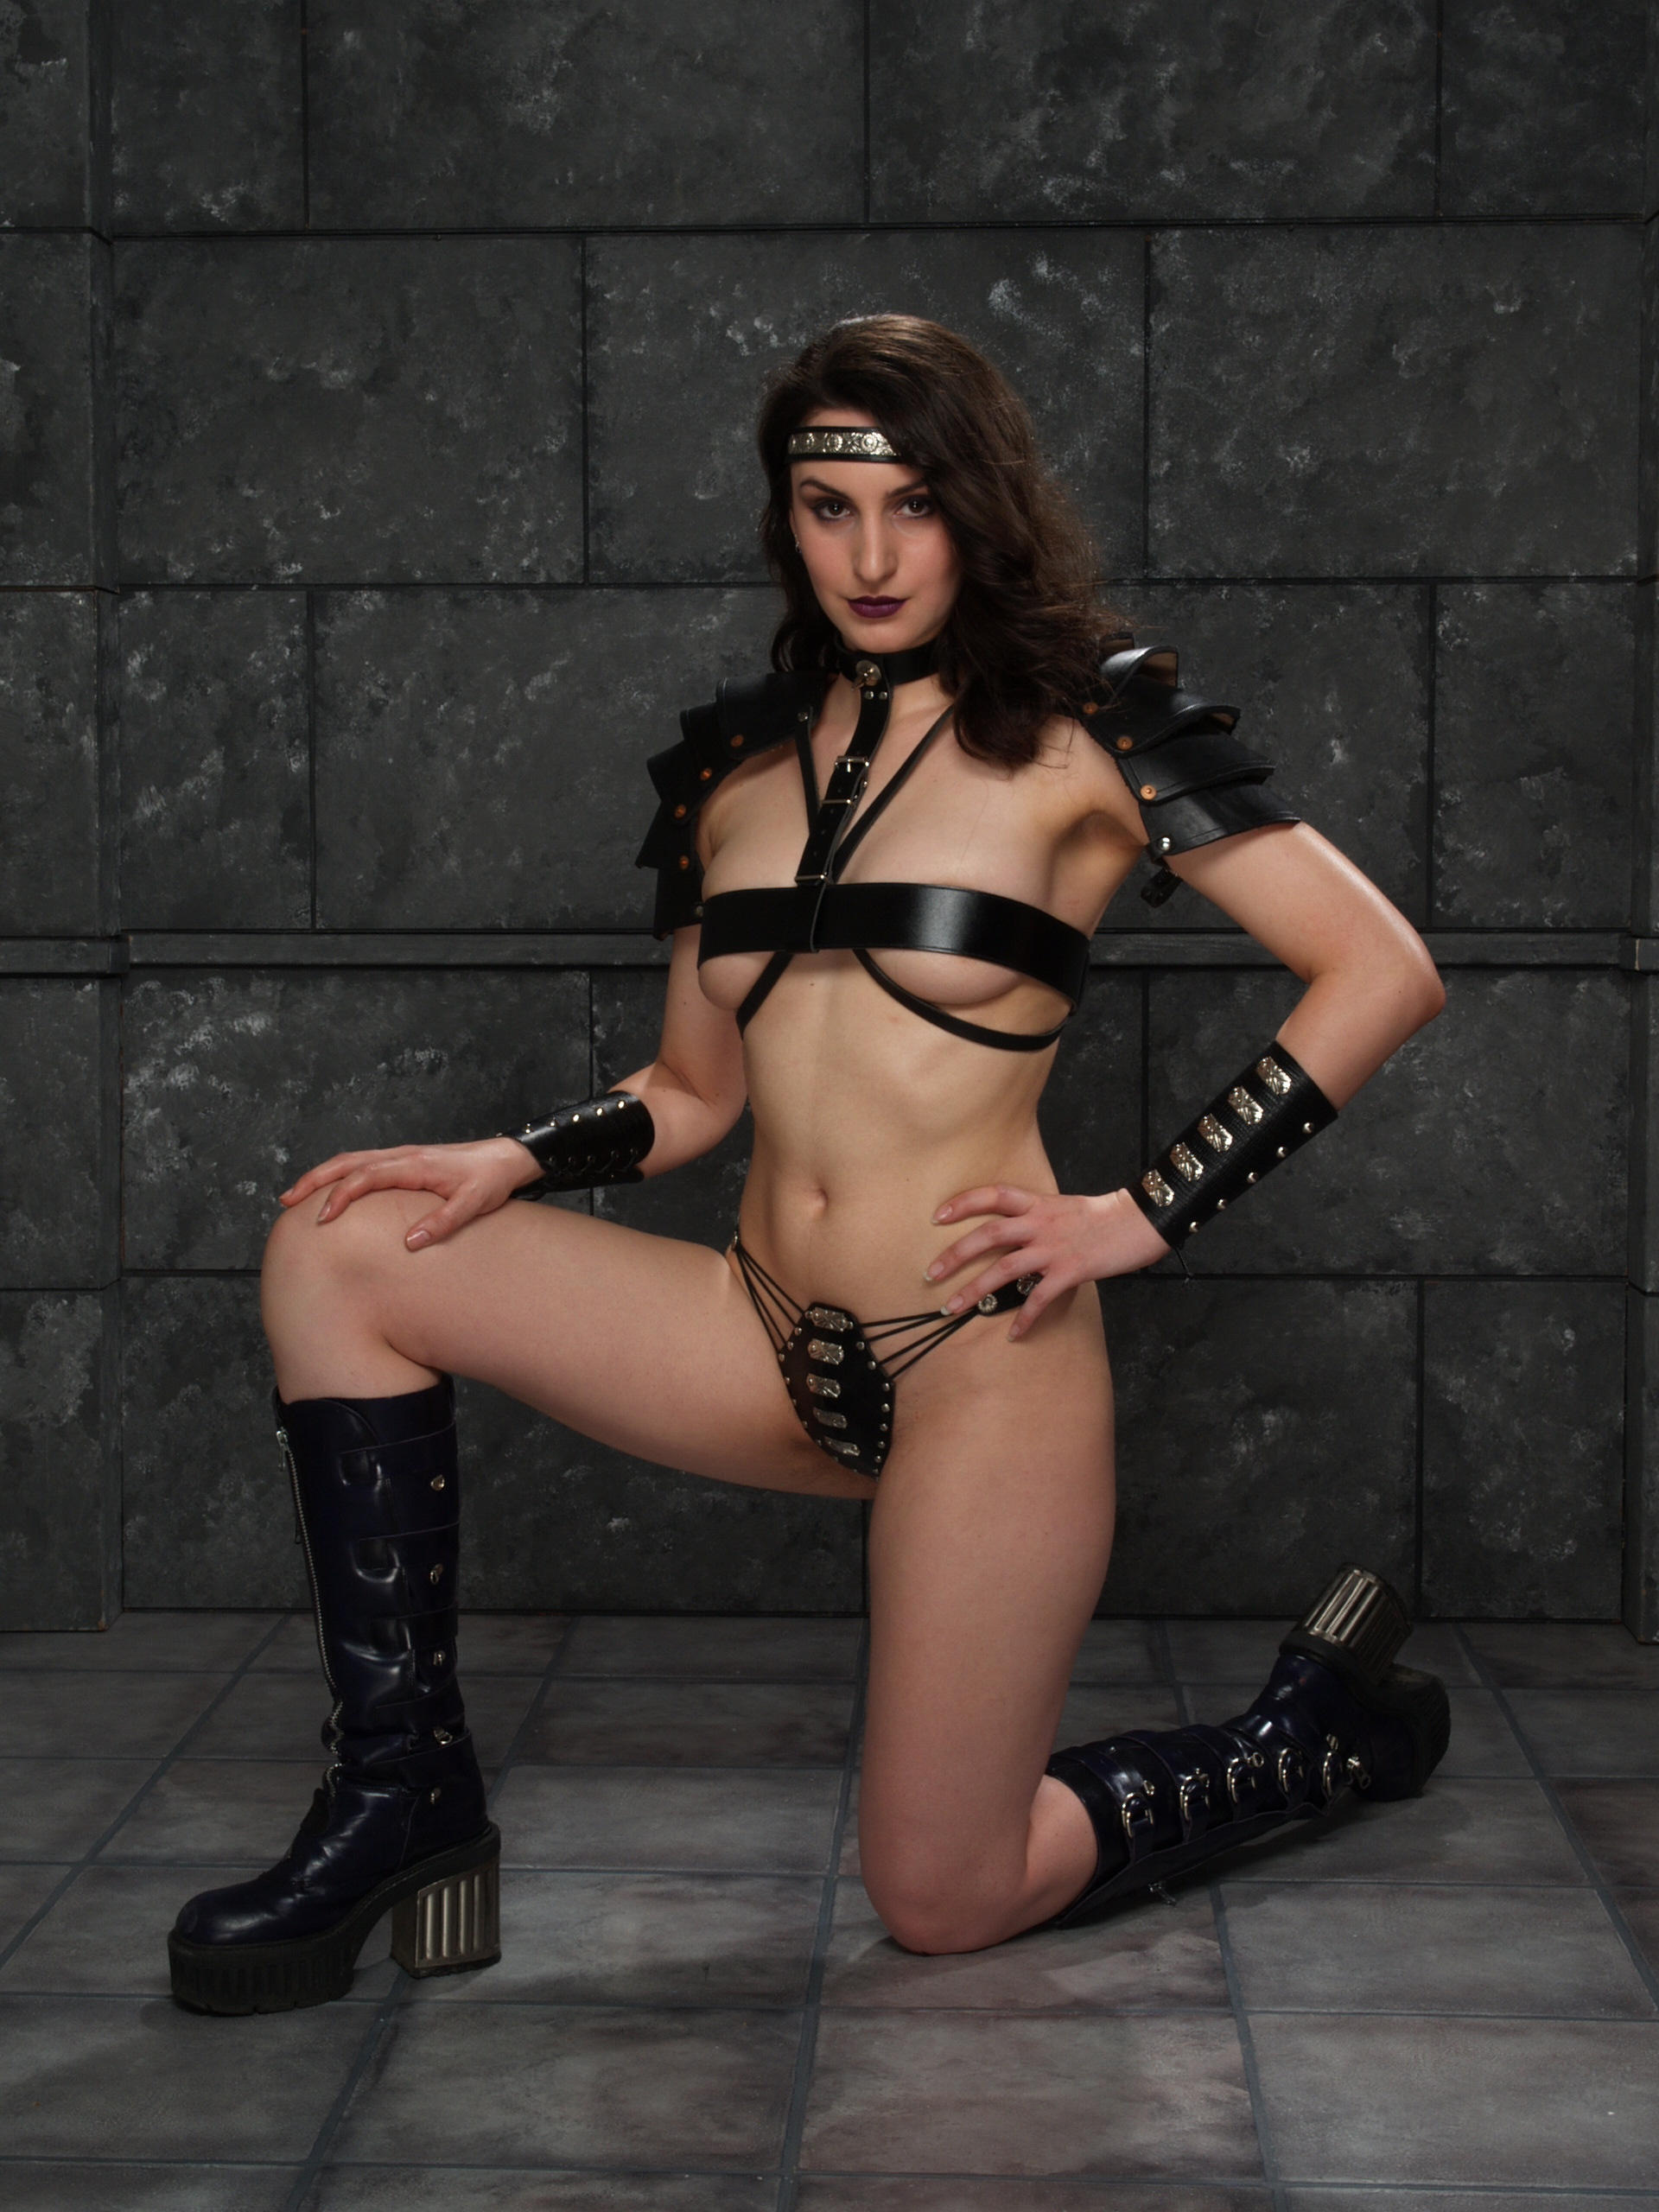 Oui voila erotic woman warrior fantasy art been